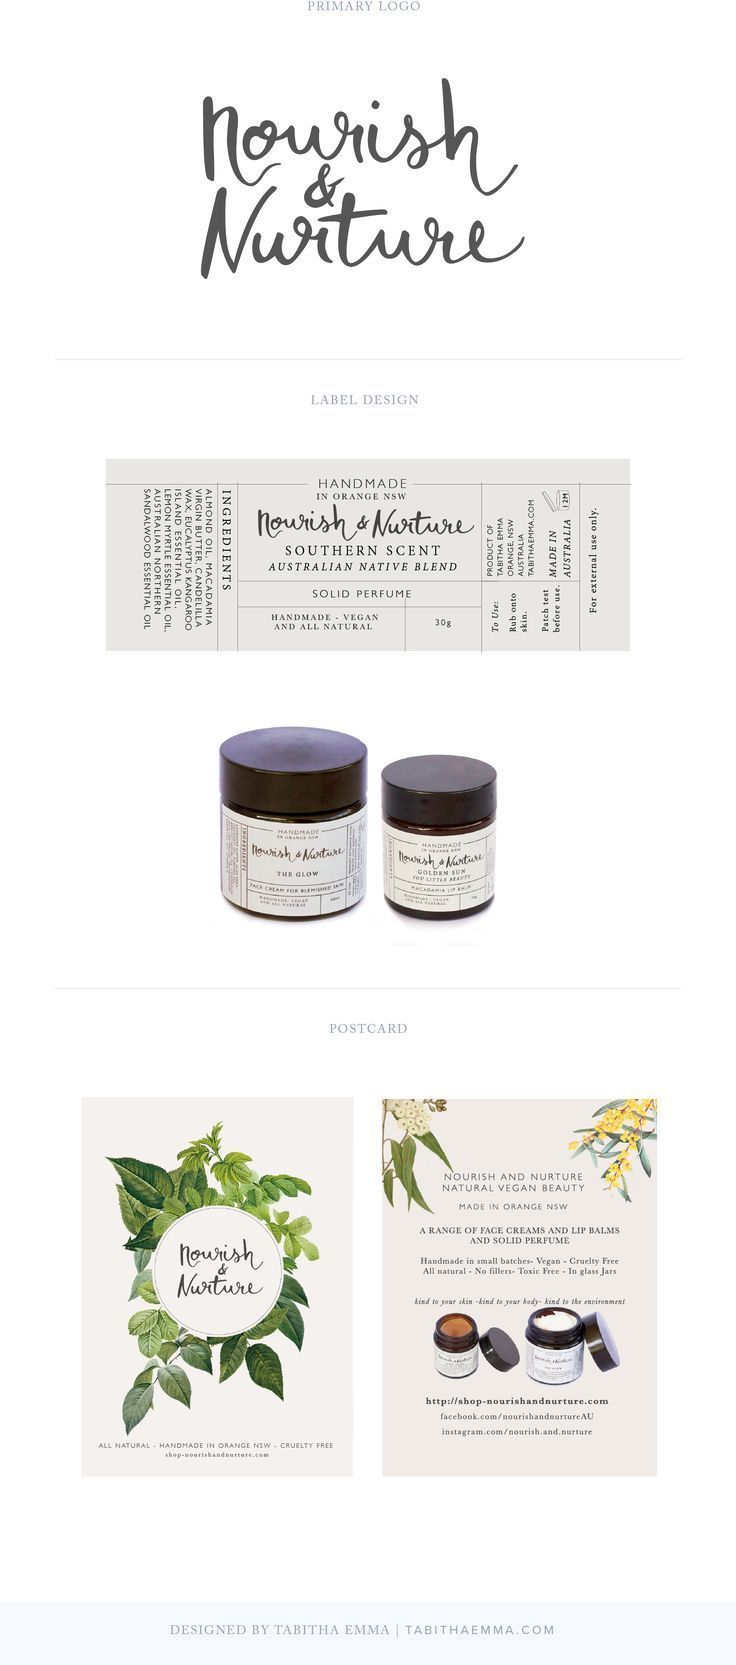 Nourish and Nurture- Natural Skincare label packaging design